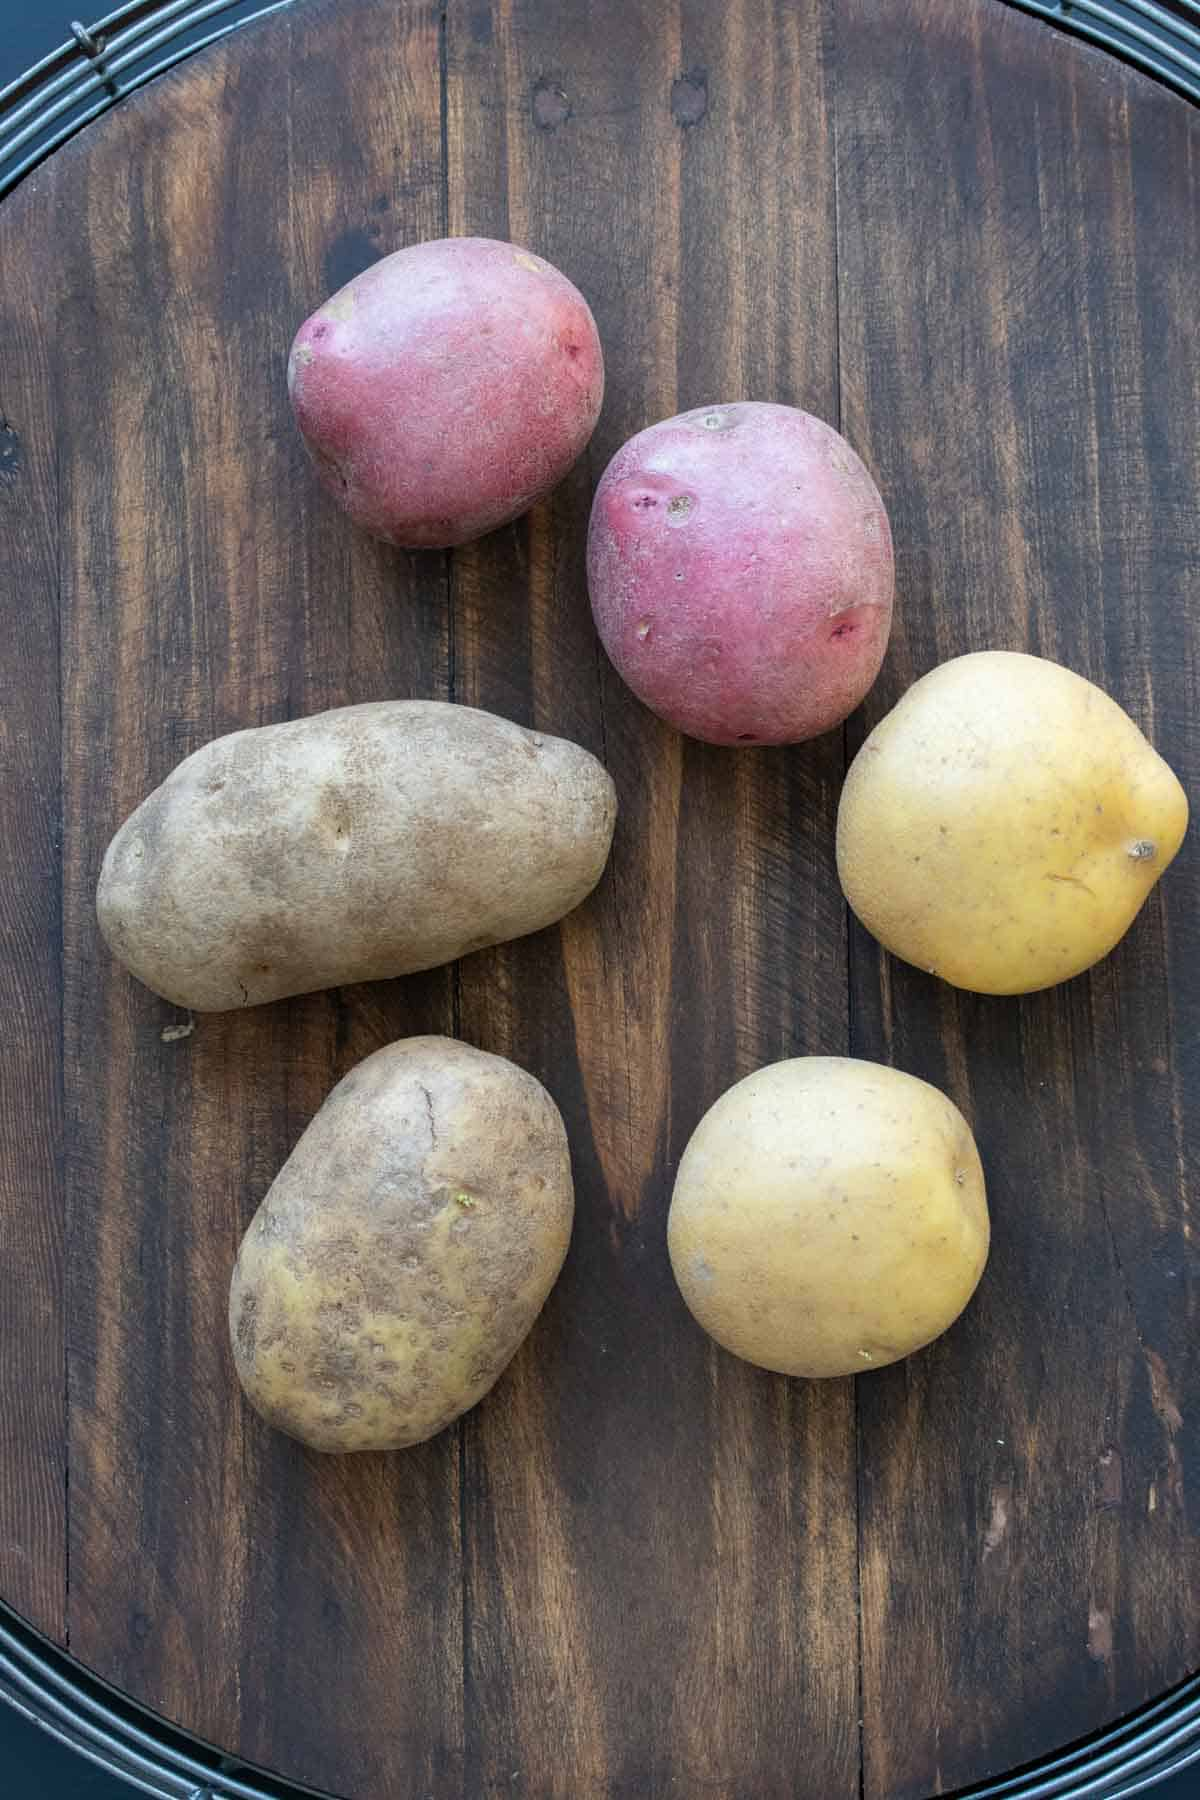 Top view of different kinds of potatoes on a wooden table